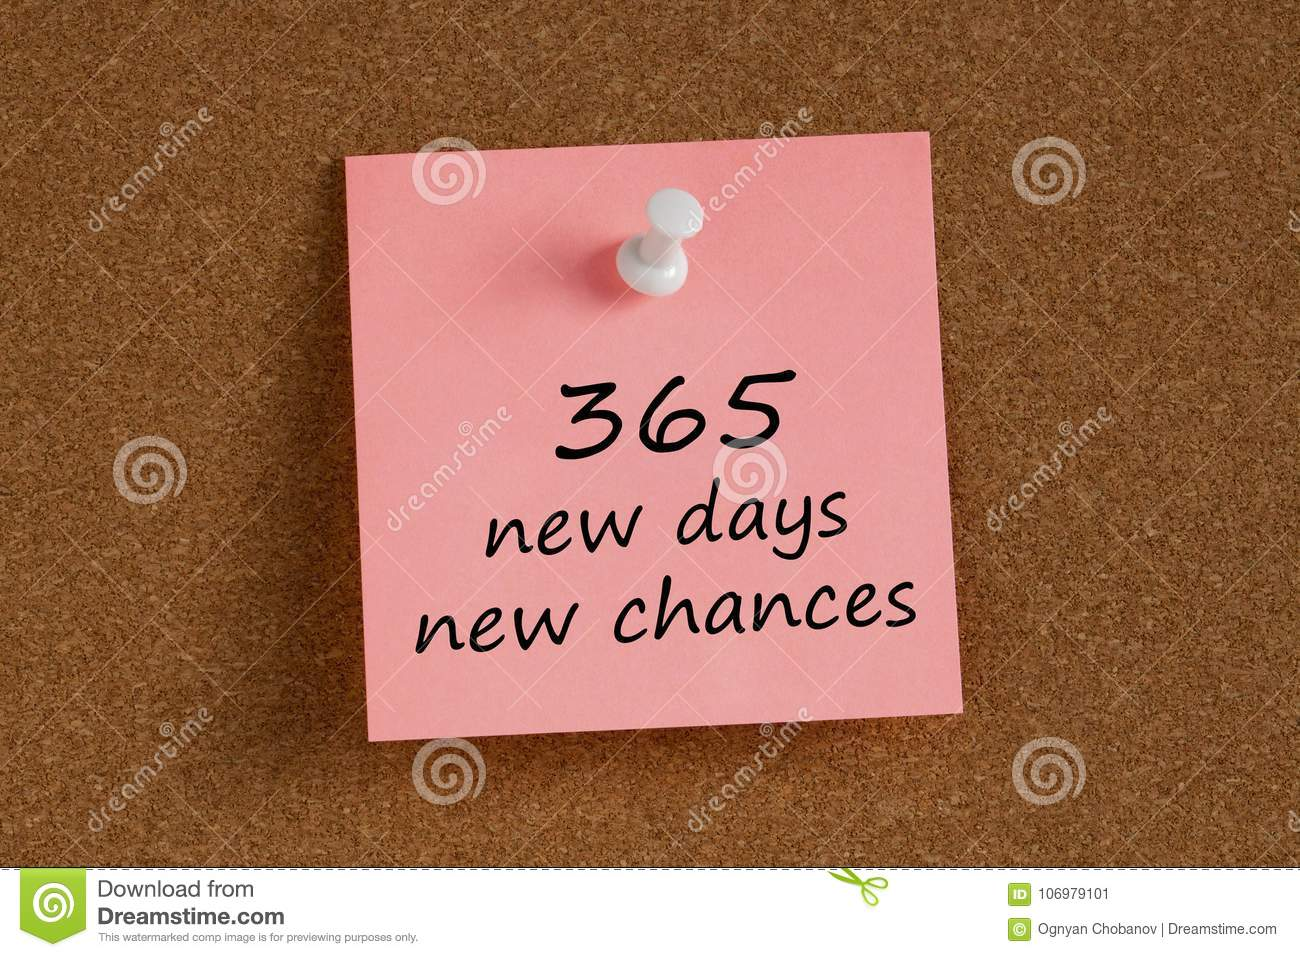 365 new days new chances written on remember note